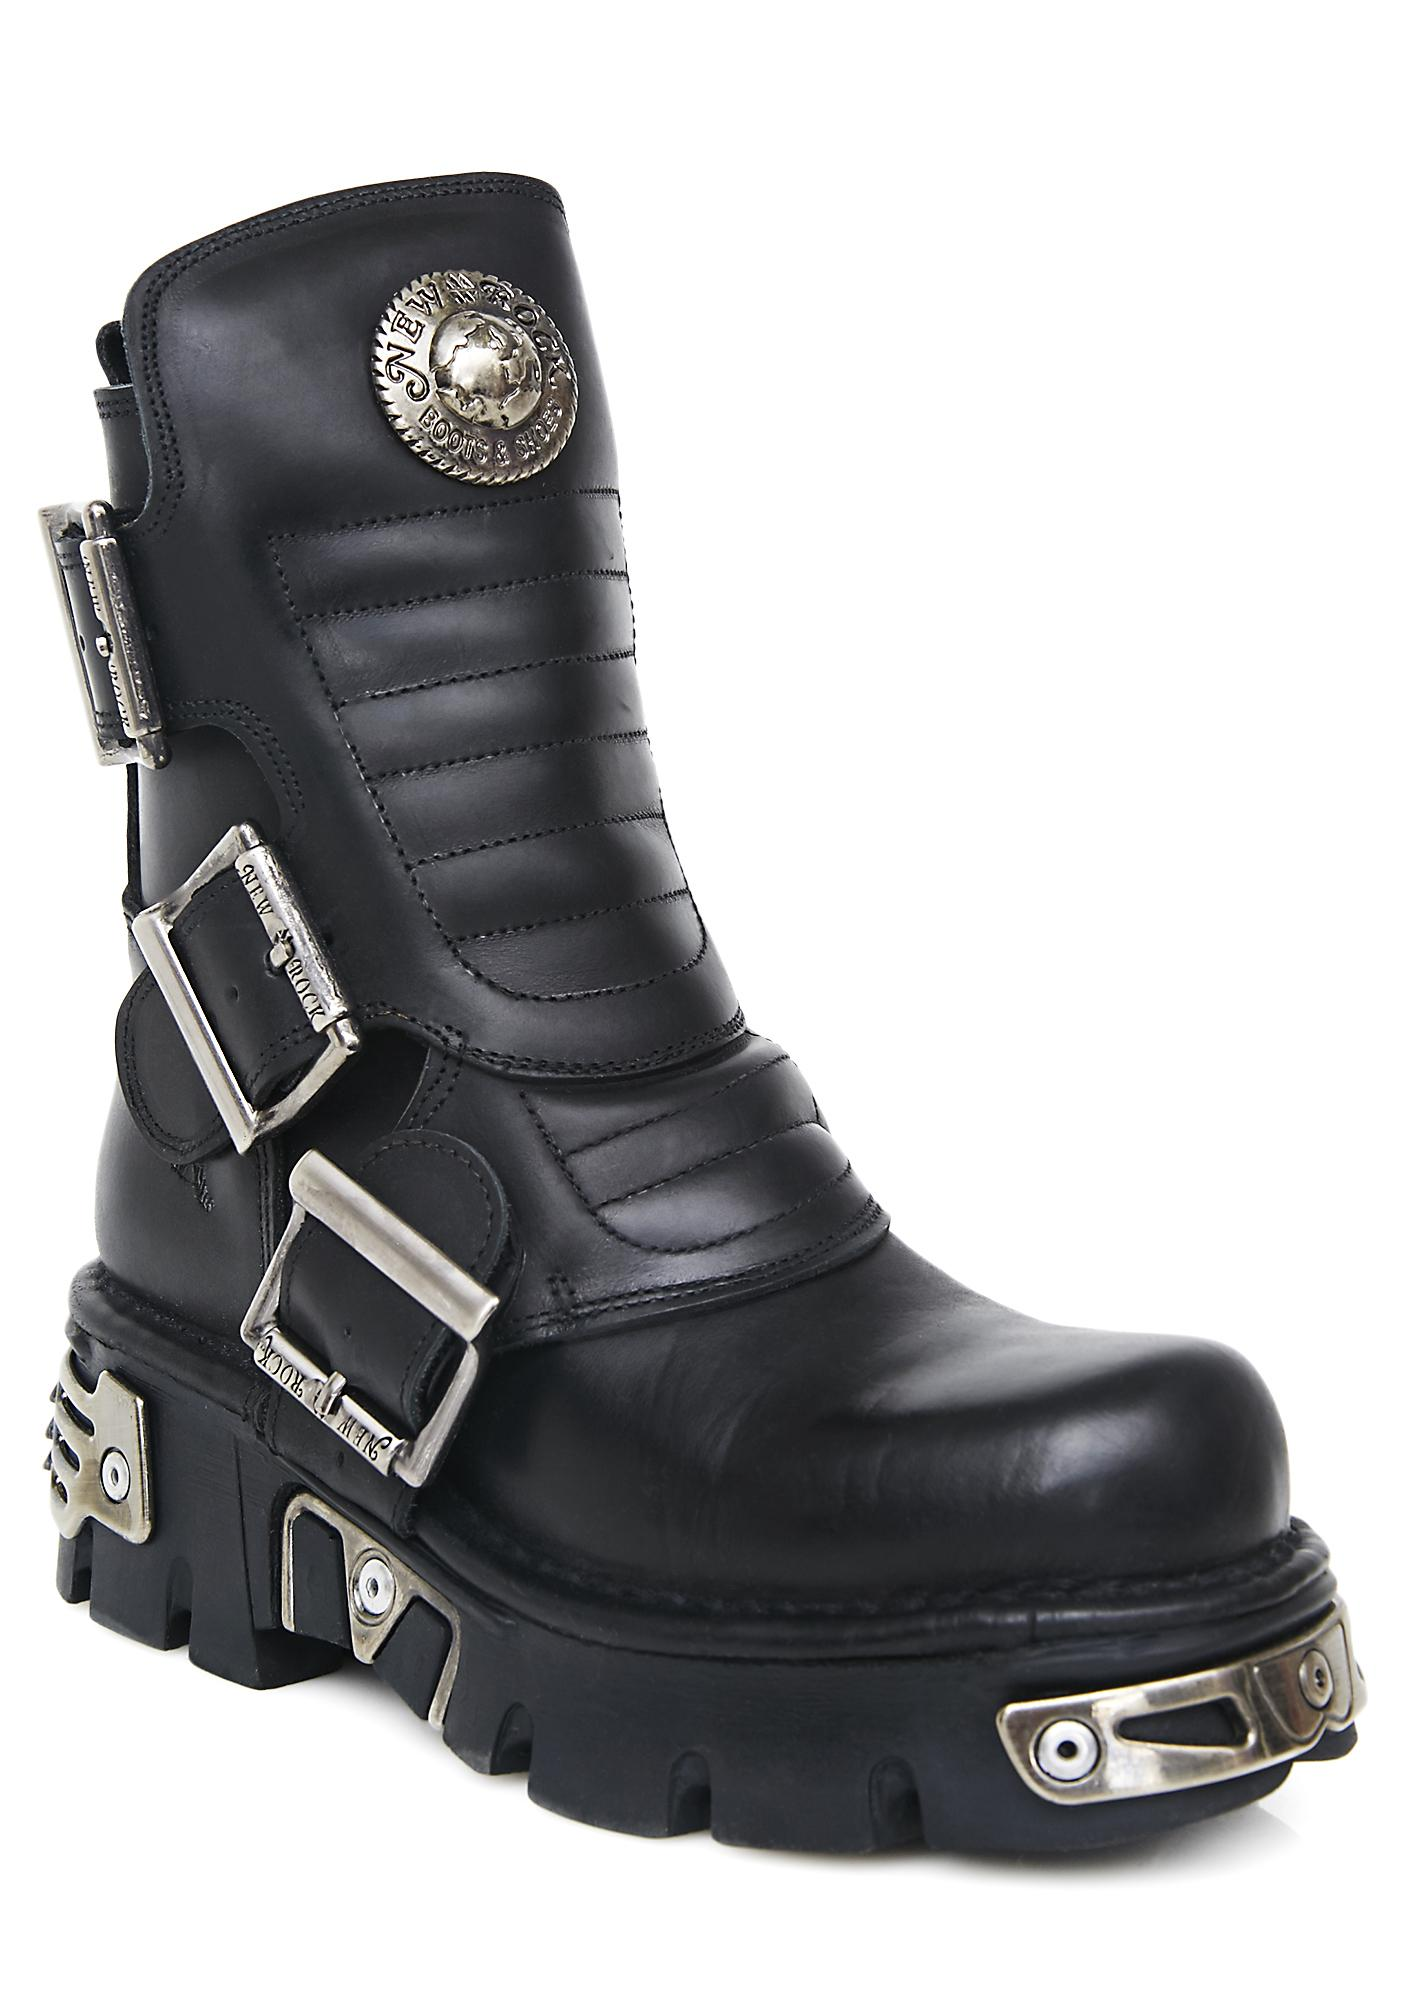 New Rock Rebellion Buckle Boots